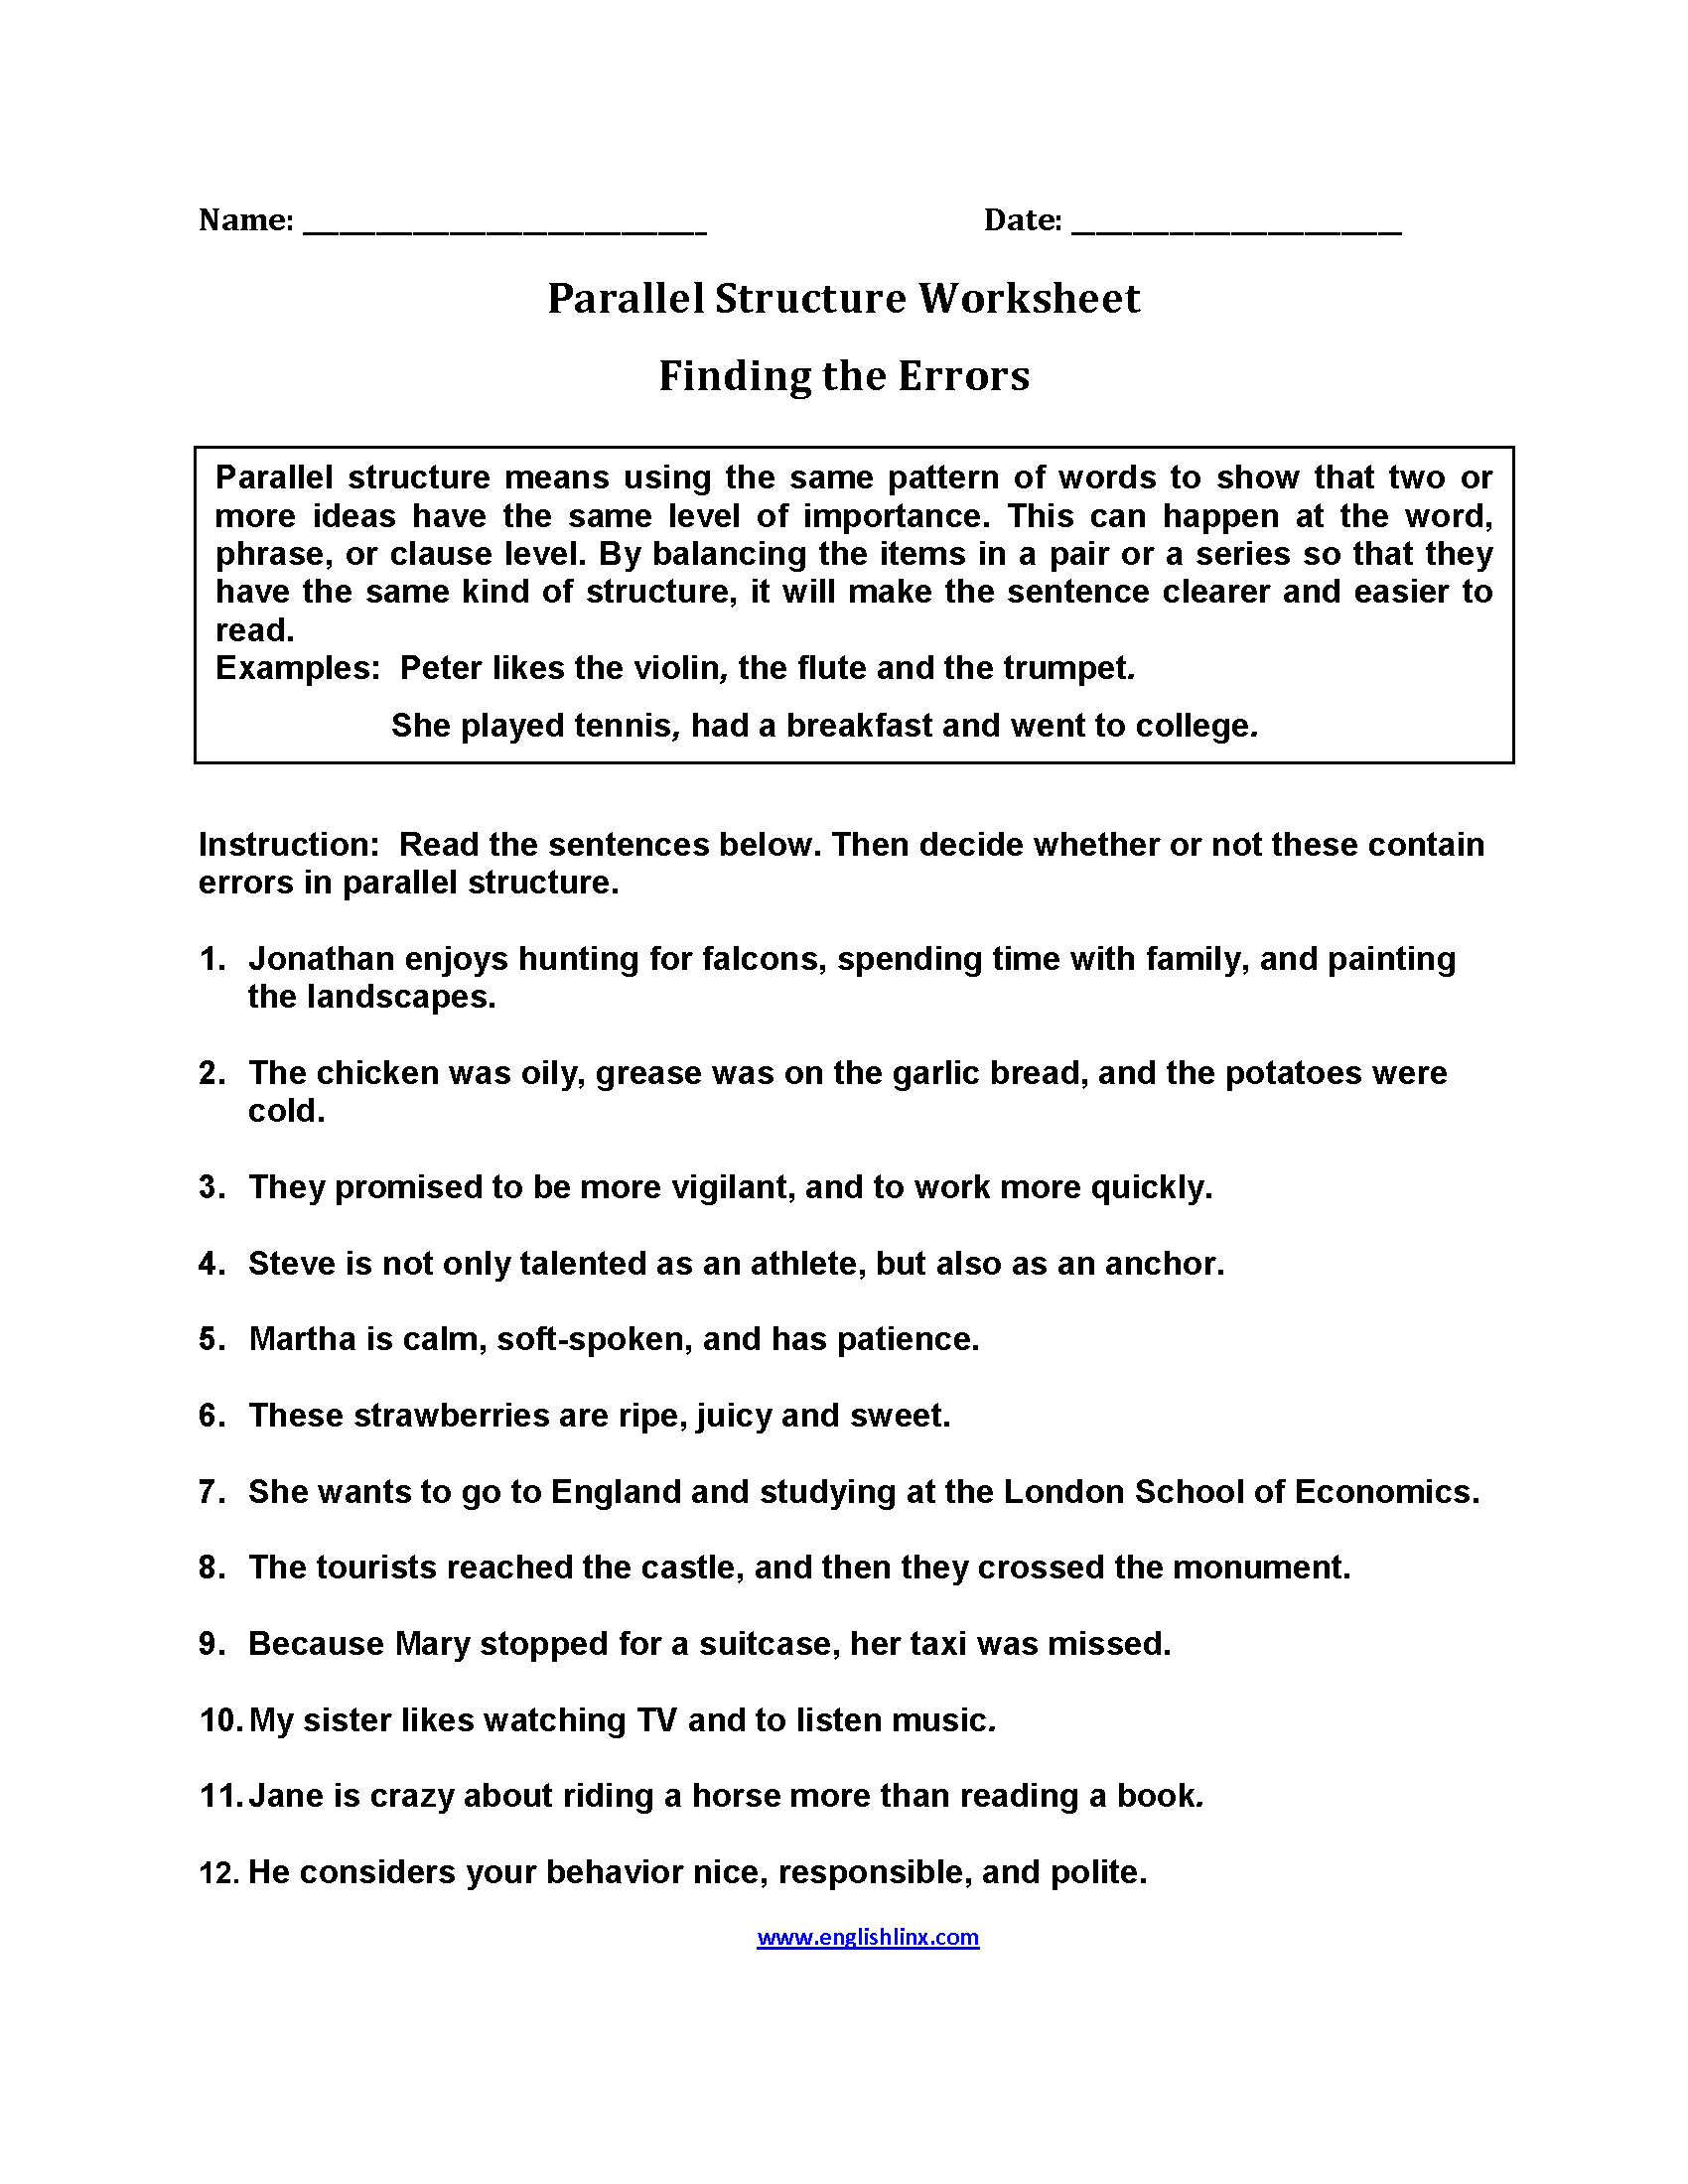 Parallel Structure Worksheets | Finding Errors Parallel Structure ...